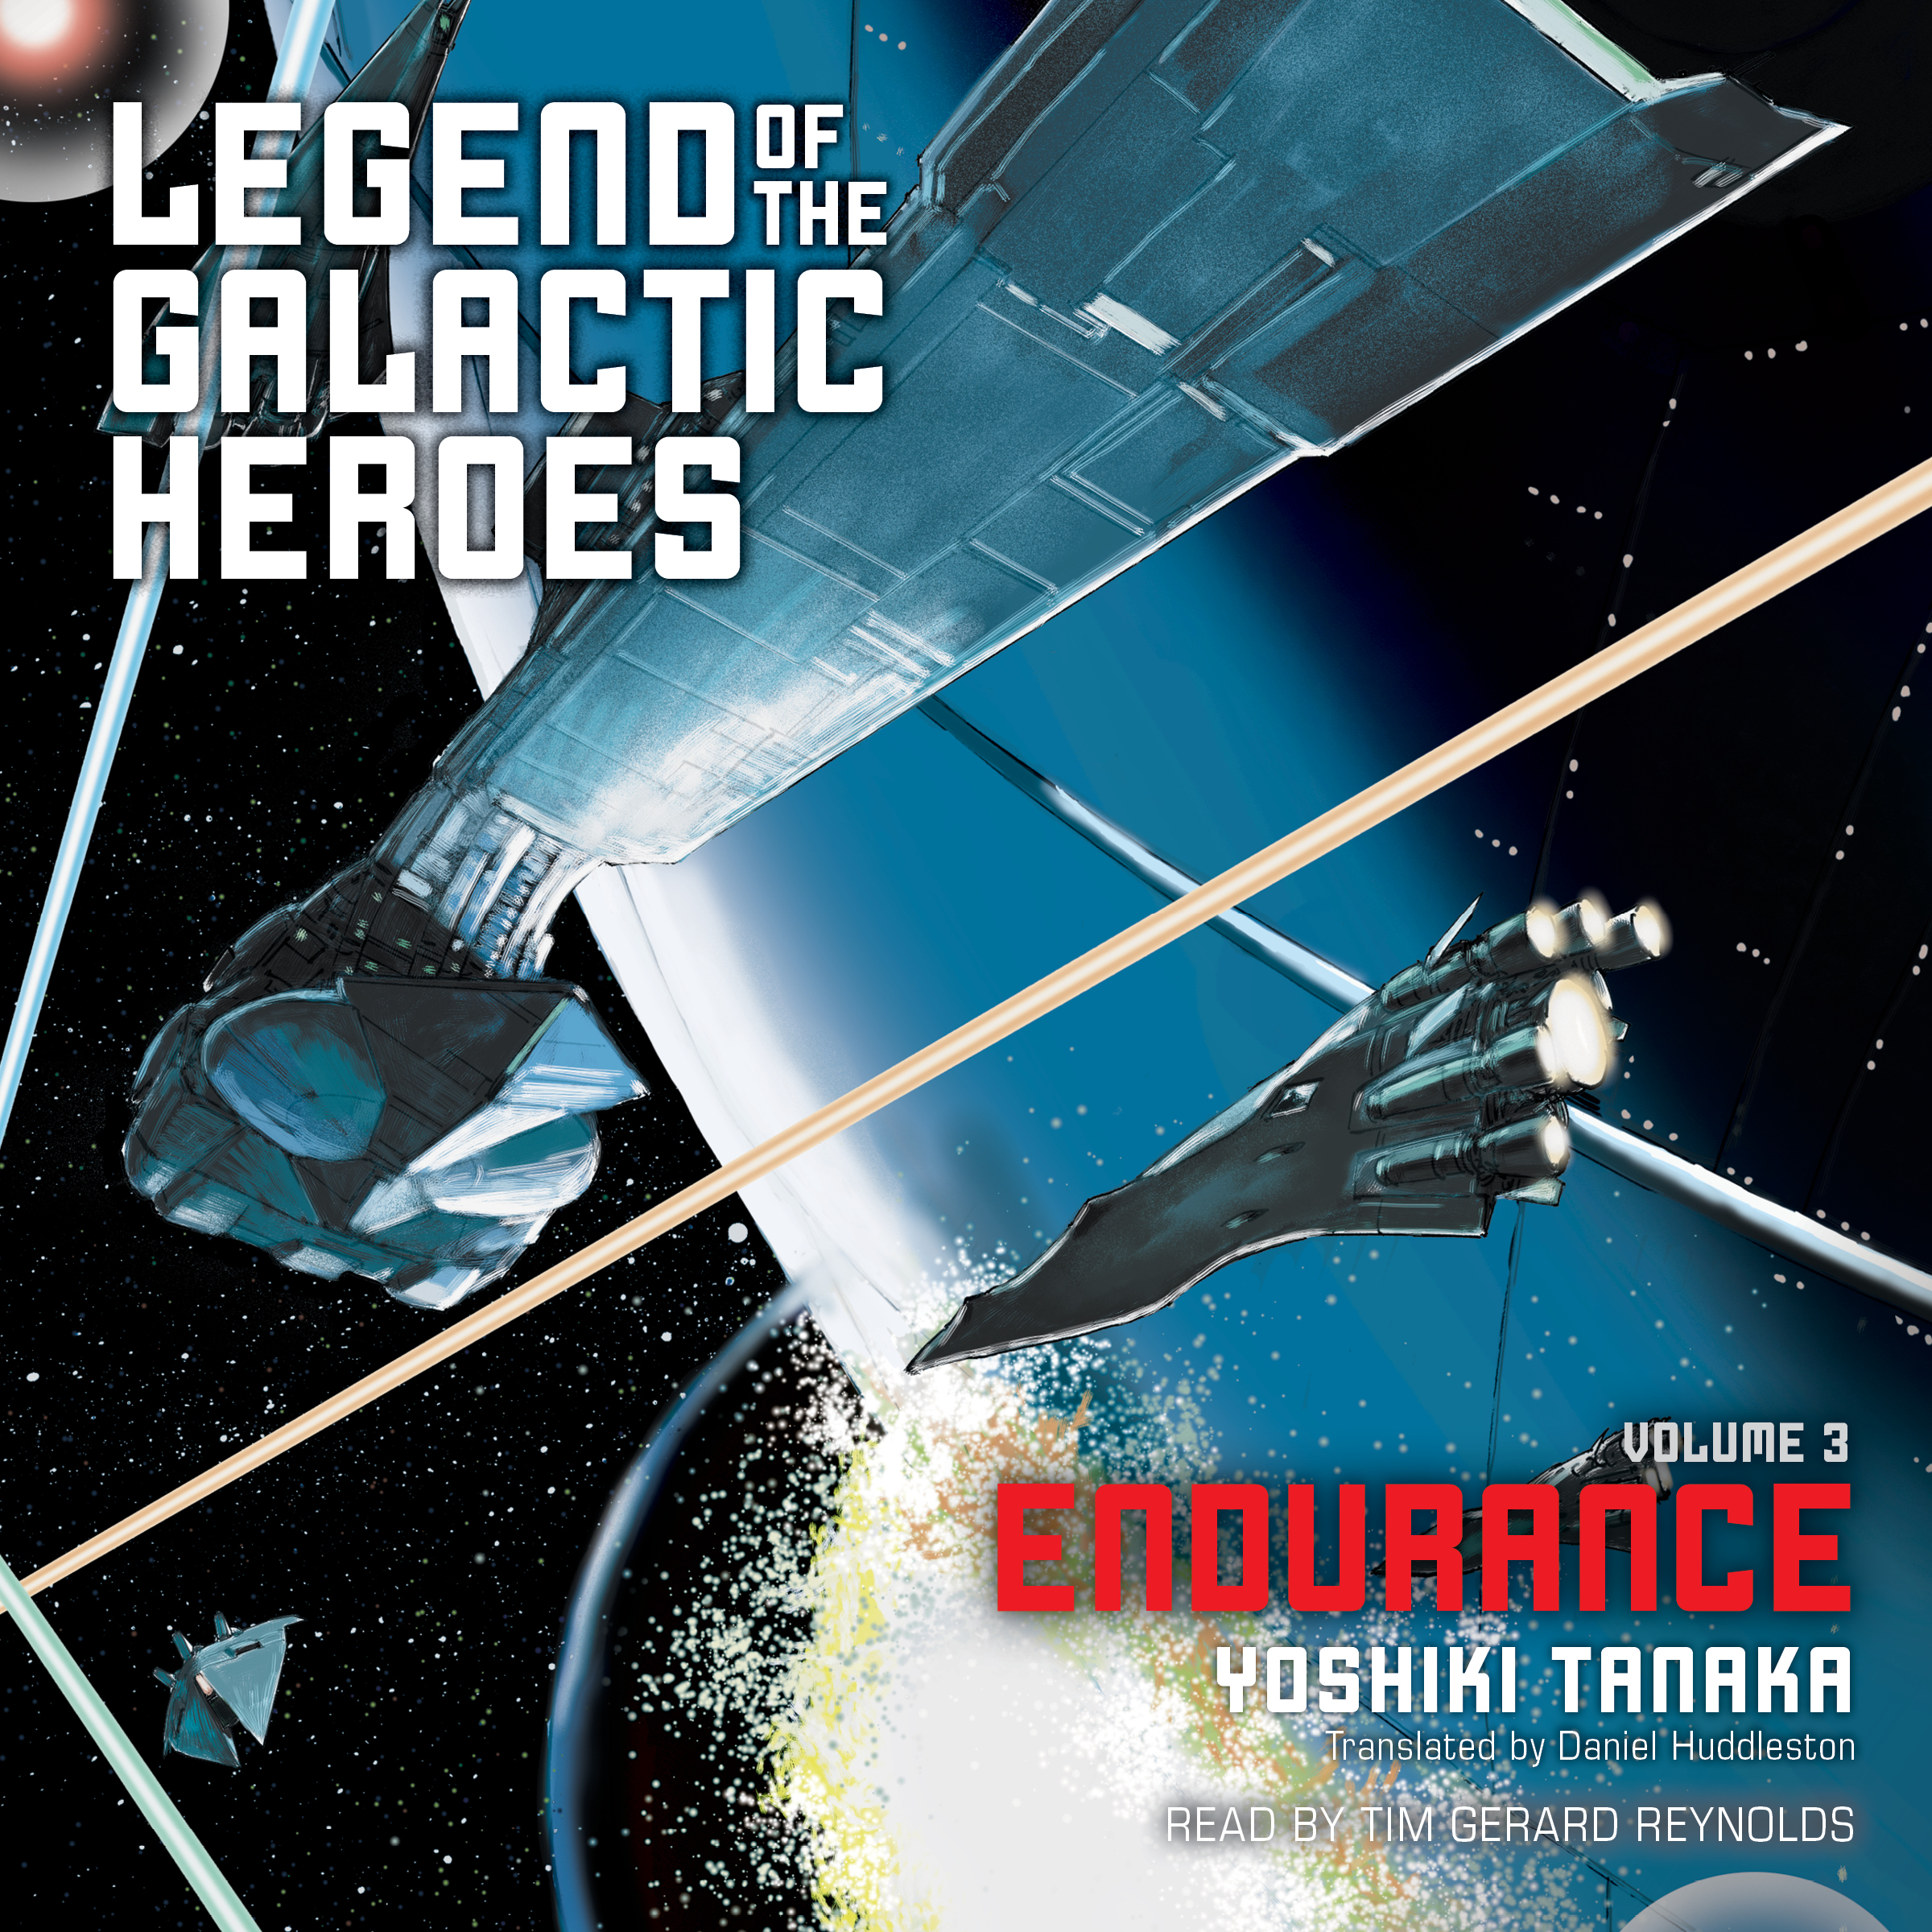 Legend of the galactic heroes vol 3 9781508218876 hr